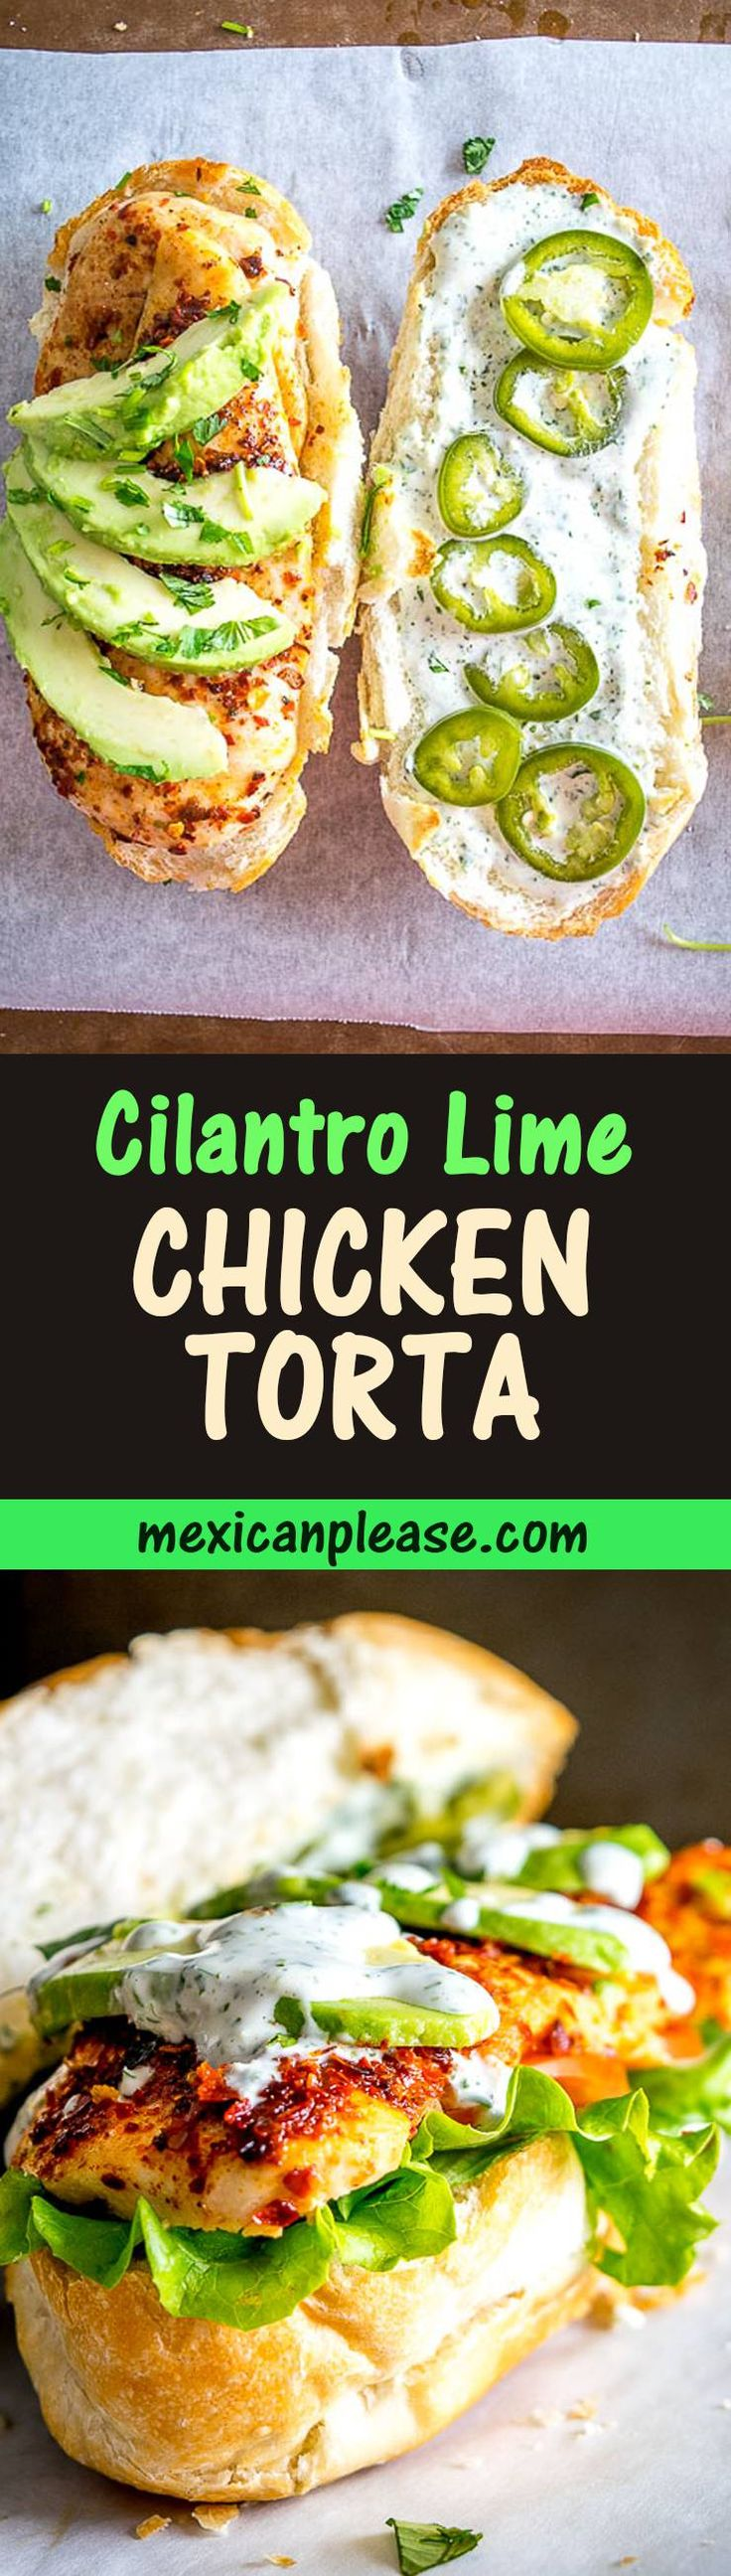 This is a great Chicken Torta combo to keep in mind for quick meals.  Fresh avocado and plenty of Cilantro Lime Mayo will turn it into one of the best sandwiches you'll ever have.  So good!  mexicanplease.com